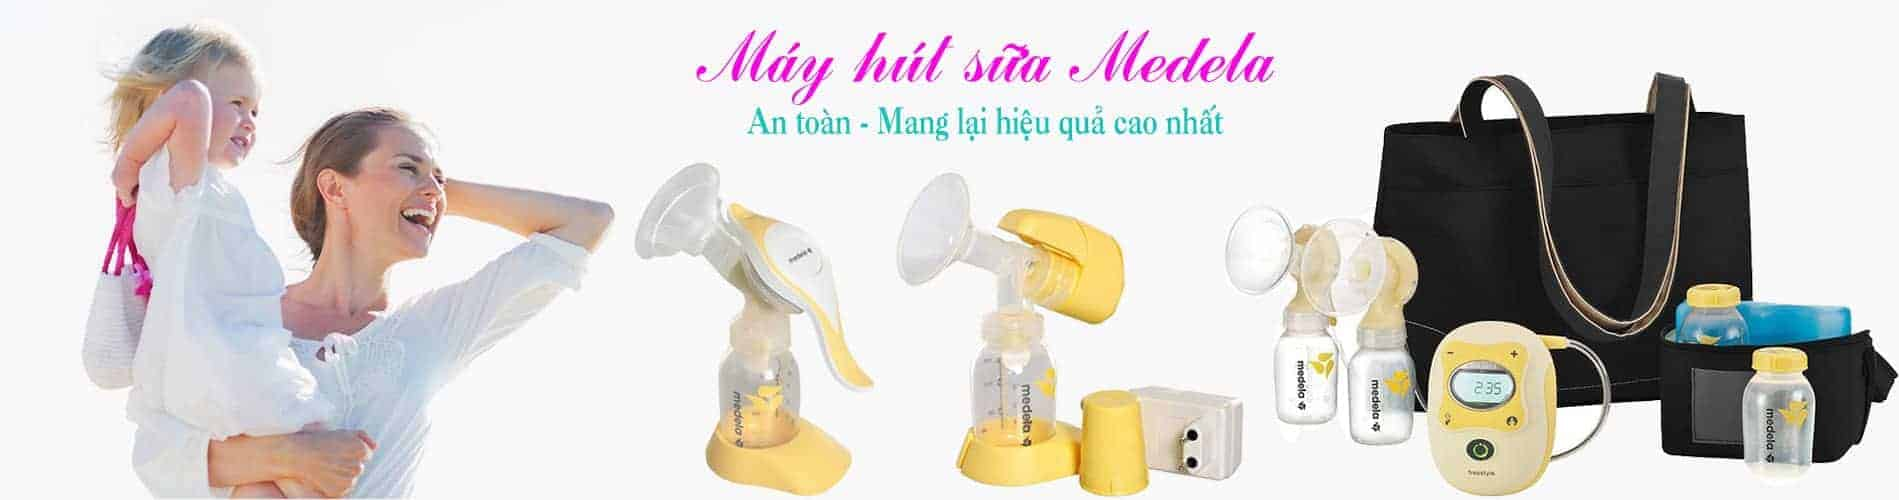 may-hut-sua-medela1